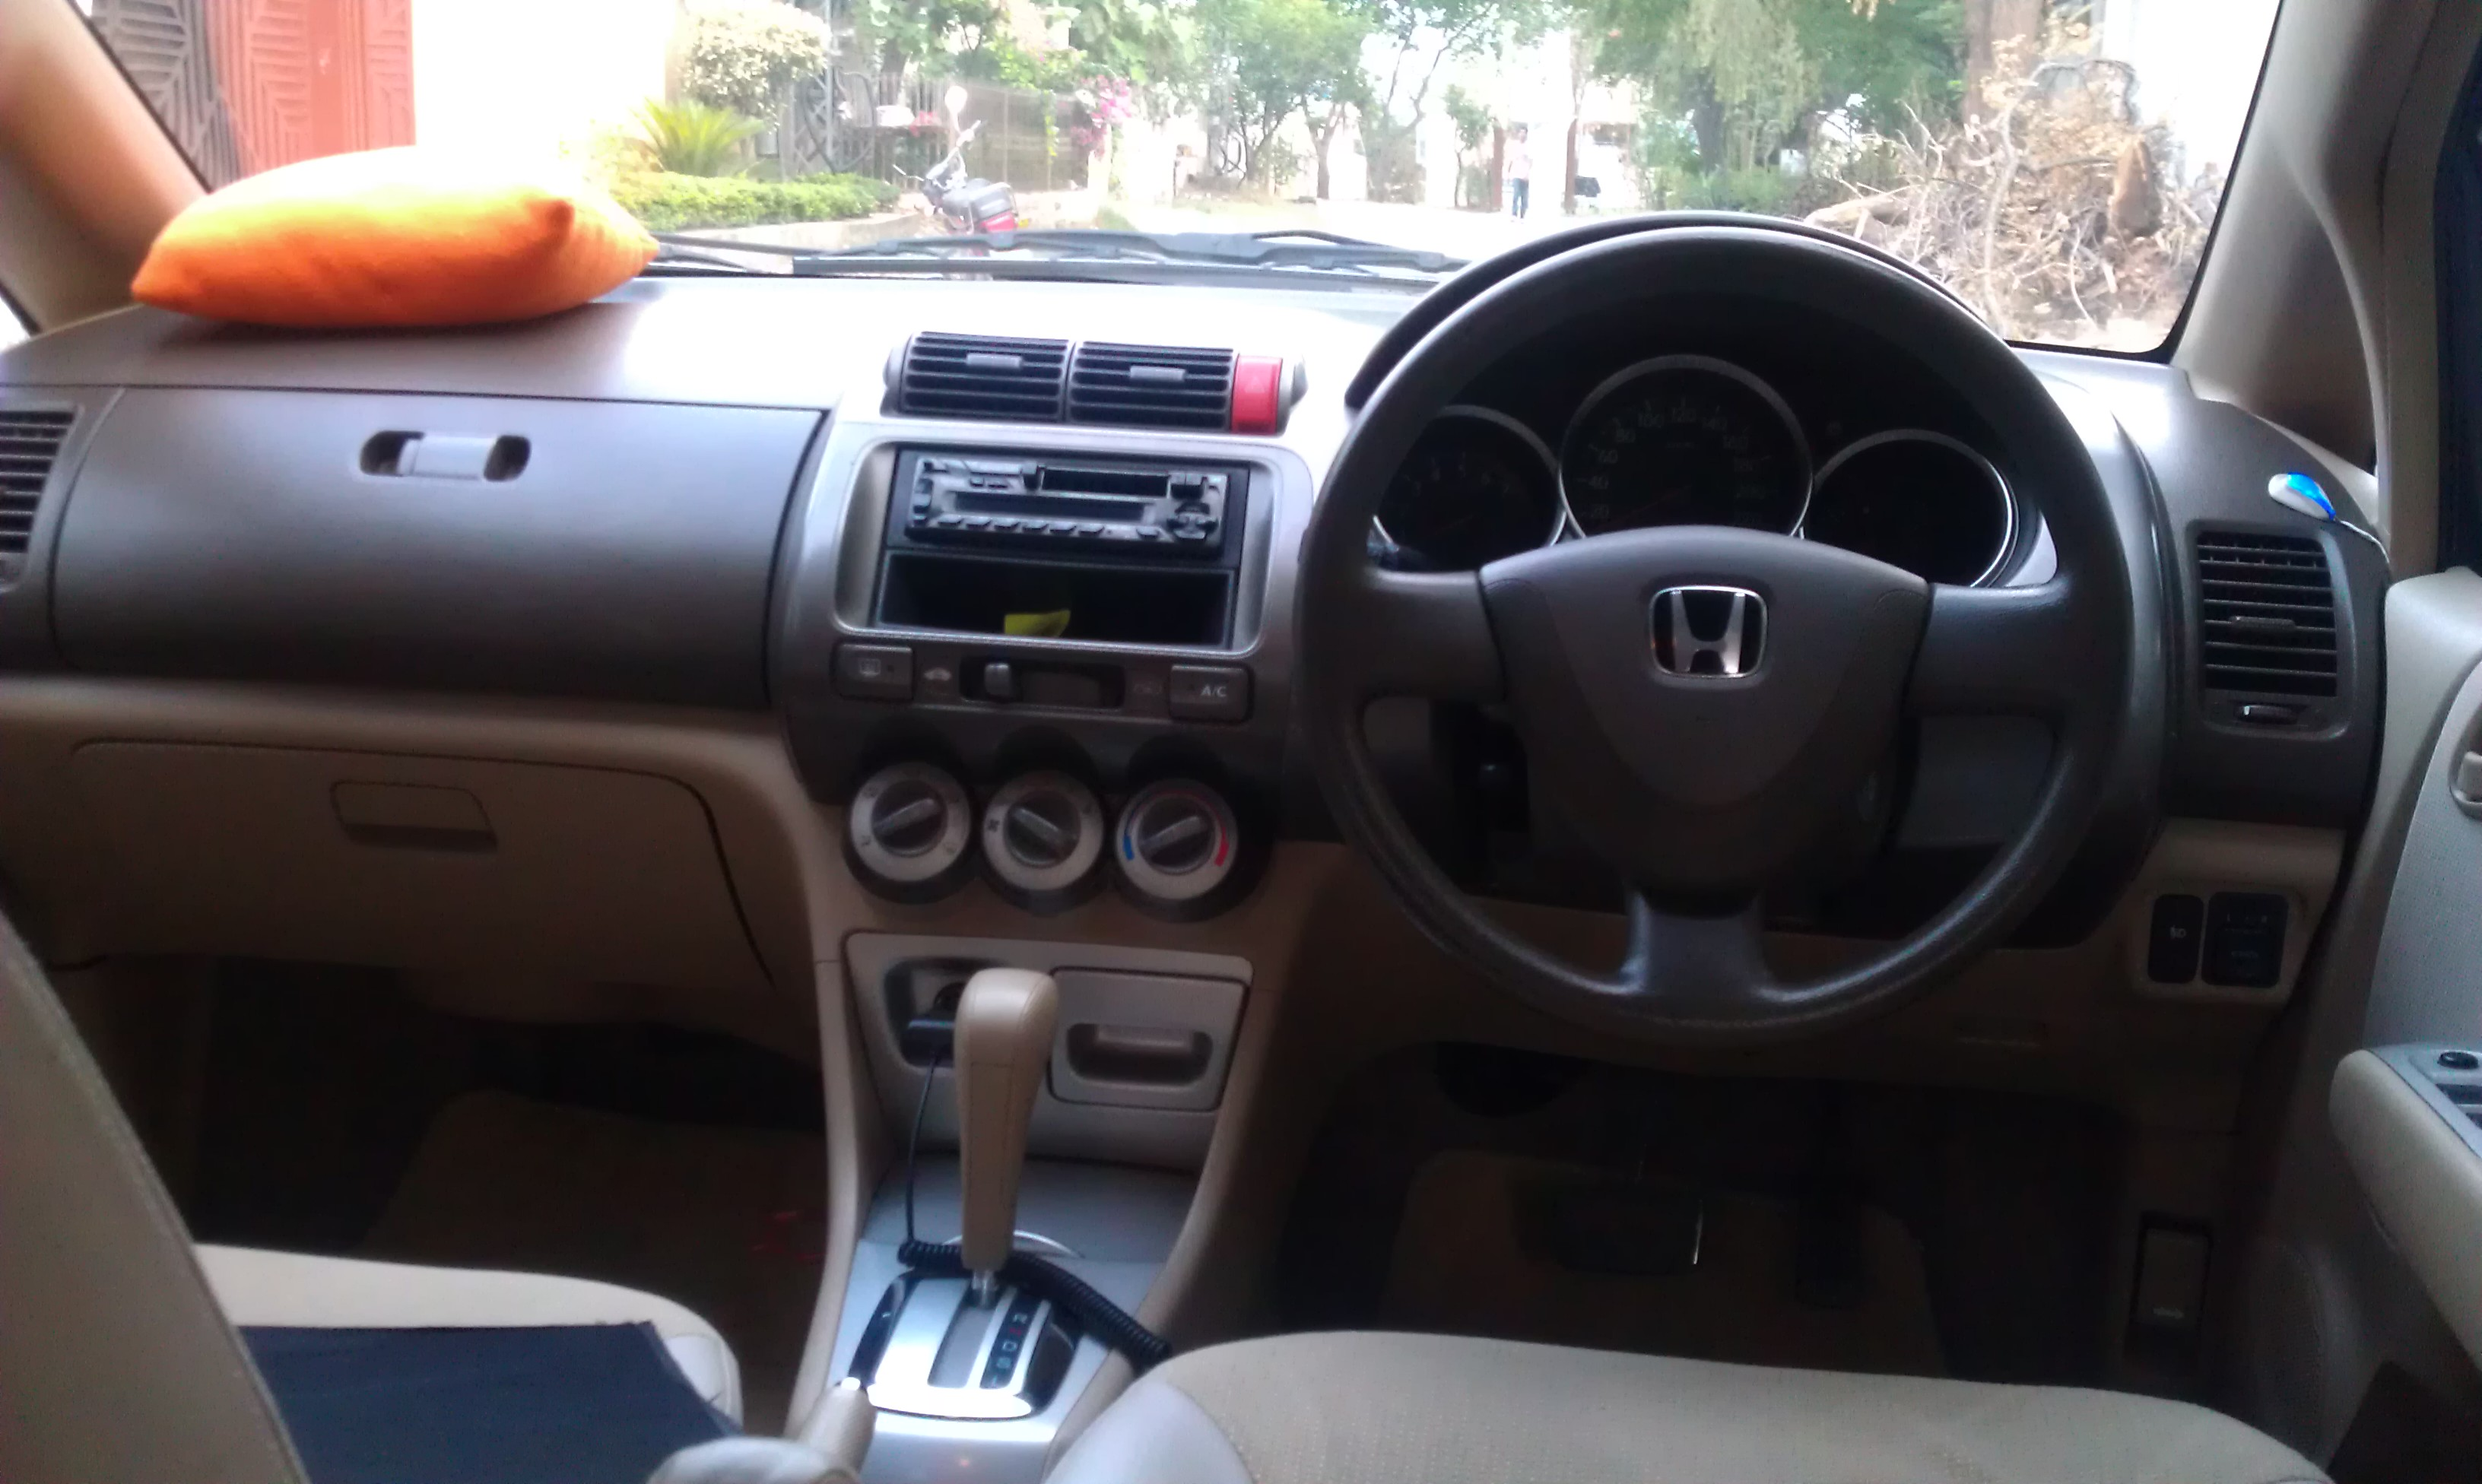 Honda City 2007 of Farouk - 40617